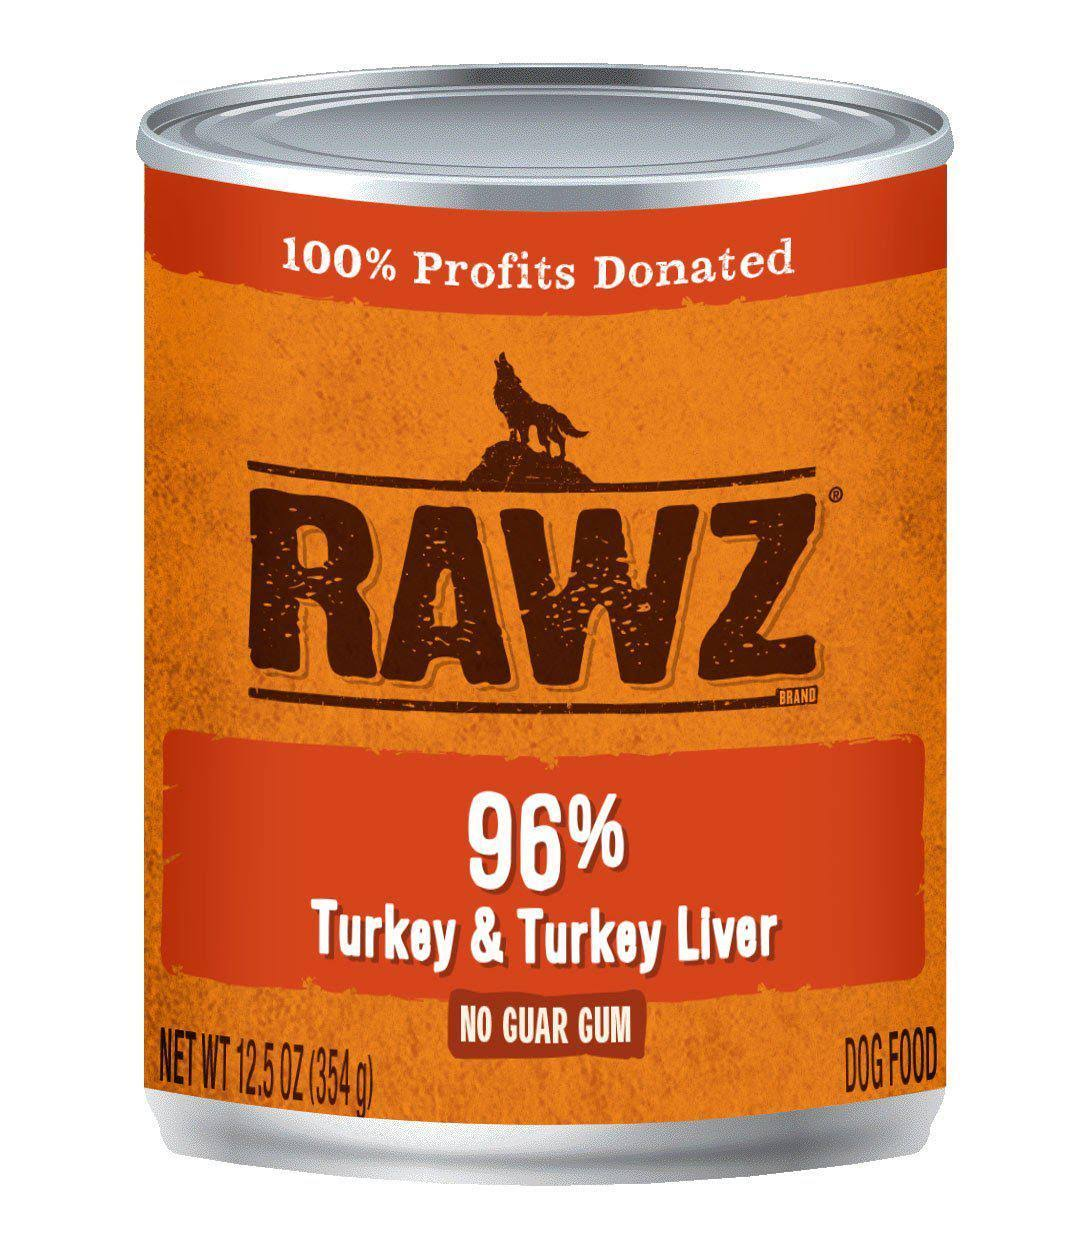 Rawz 96% Turkey & Turkey Liver Dog Food Can | Tomlinson's Feed 12.5 oz